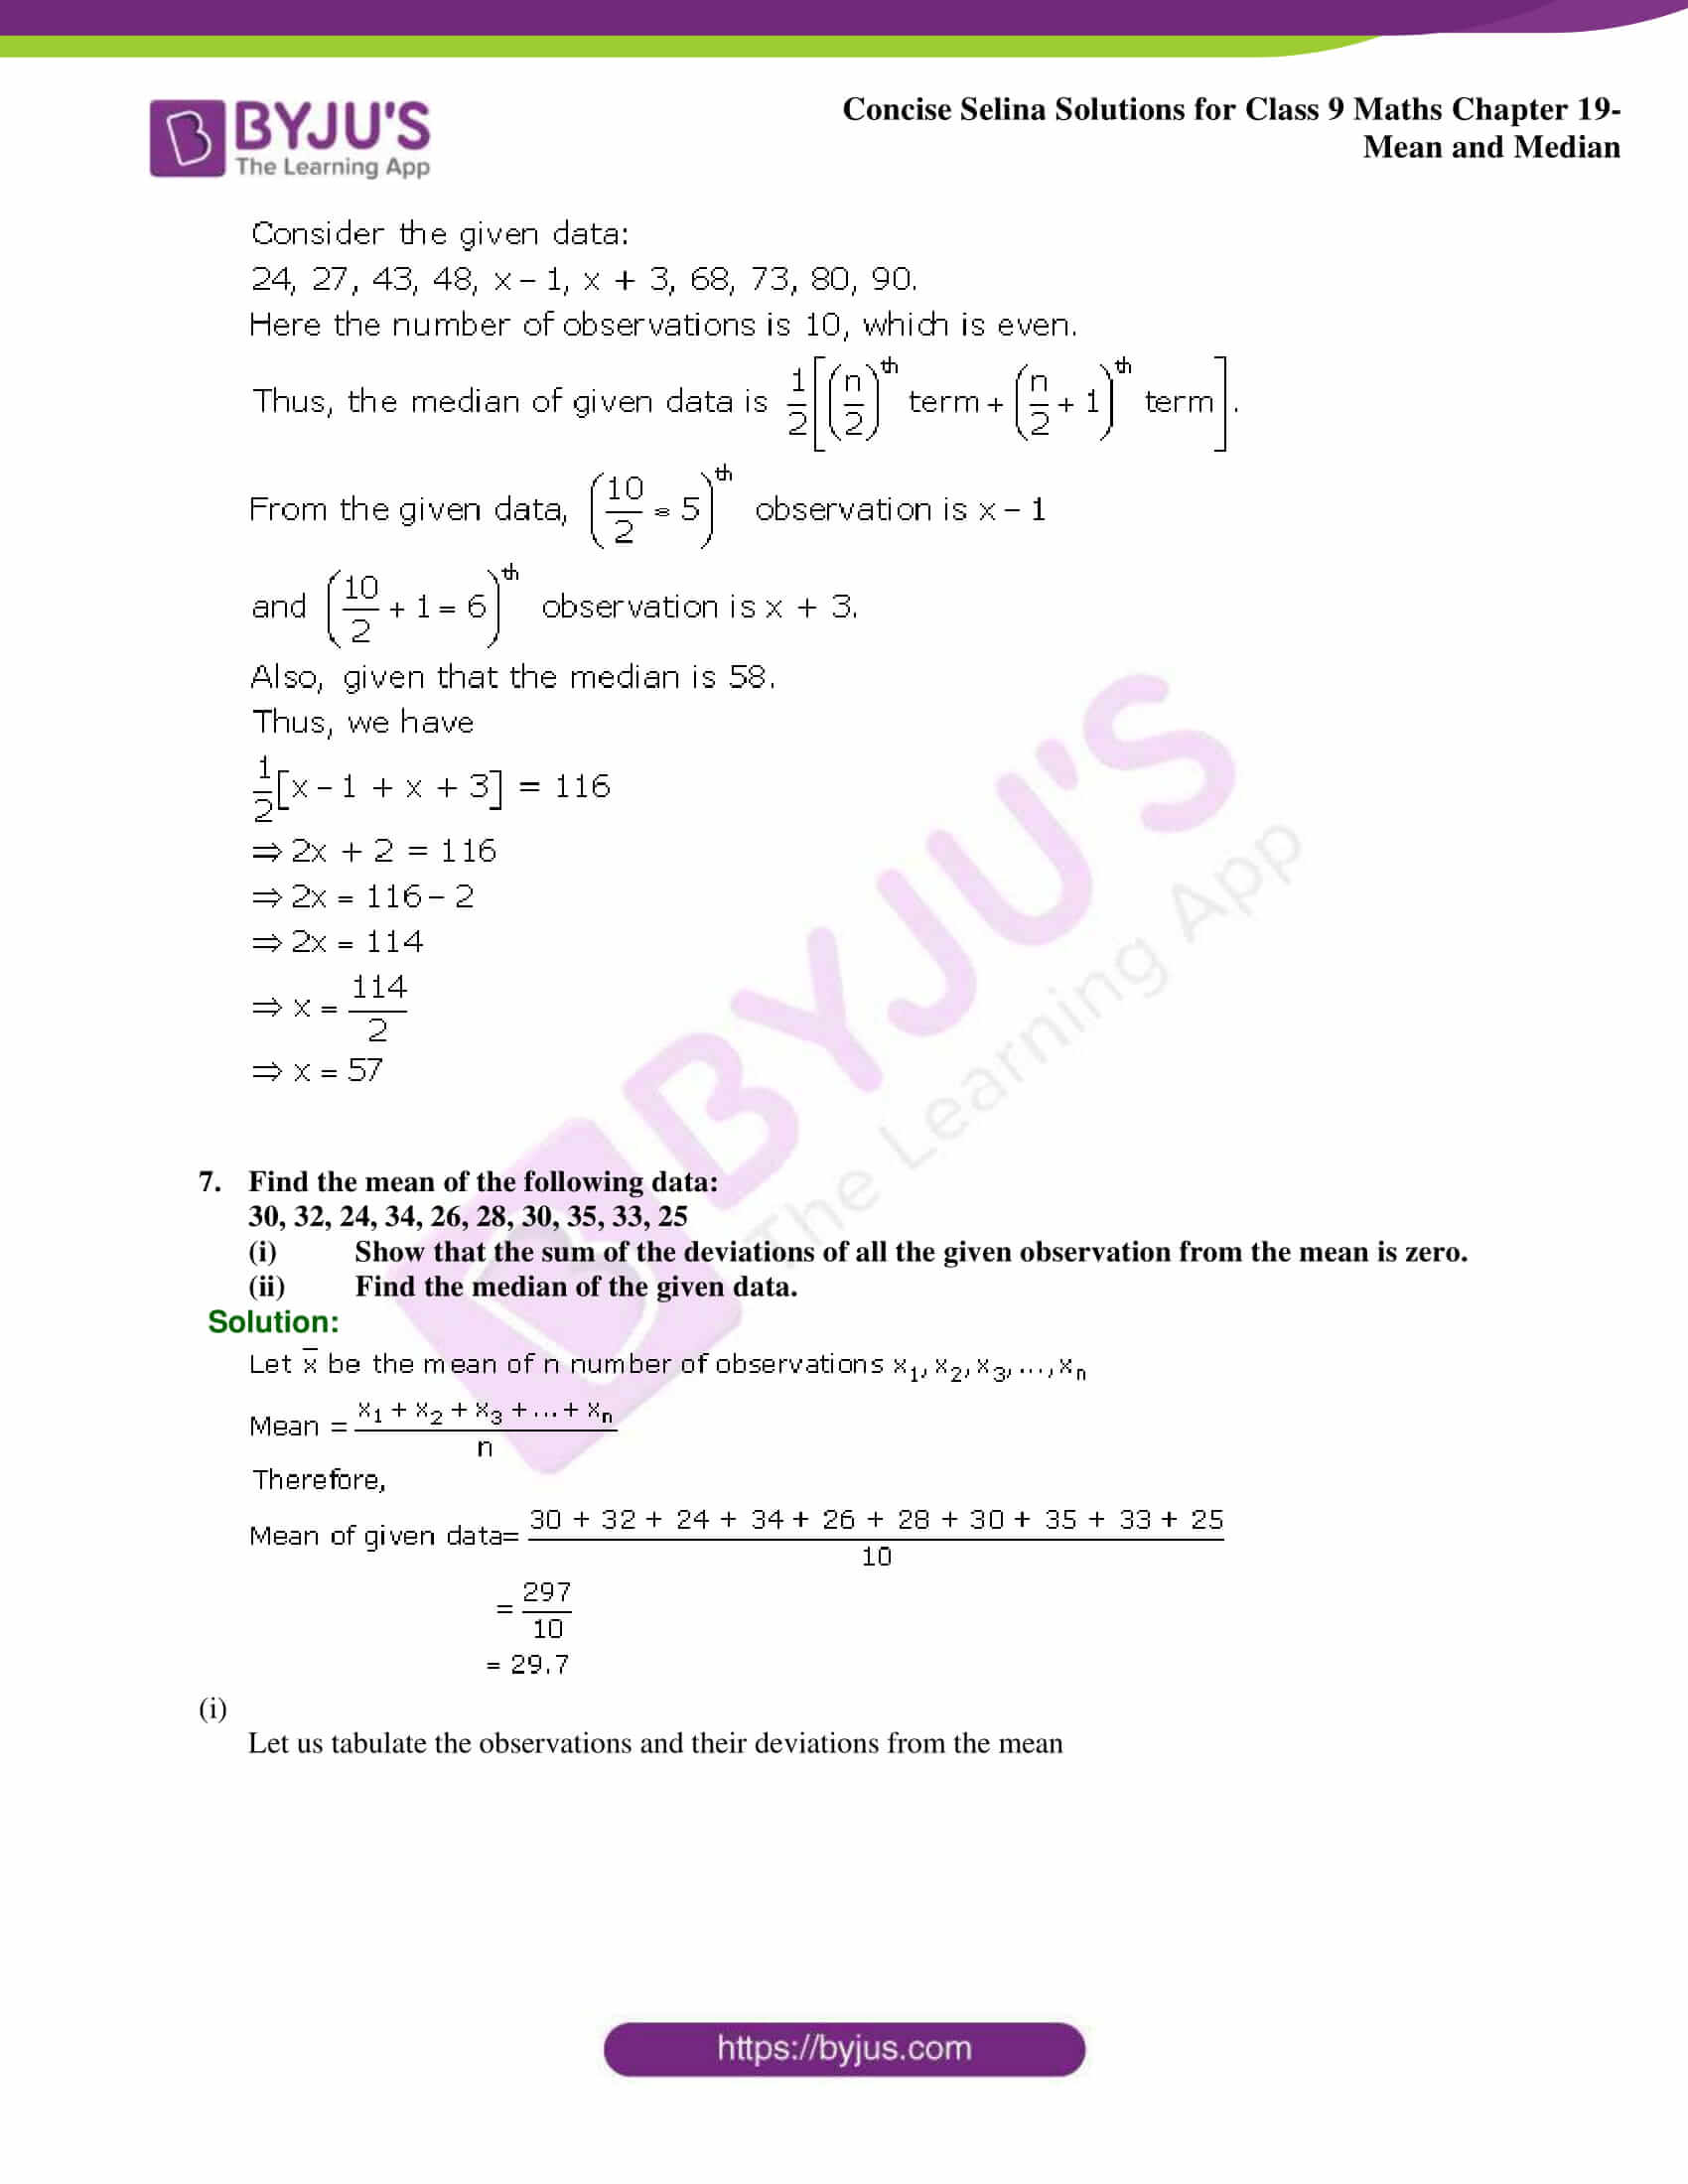 Concise Selina Solutions Class 9 Maths Chapter 19 Mean and Median part 17